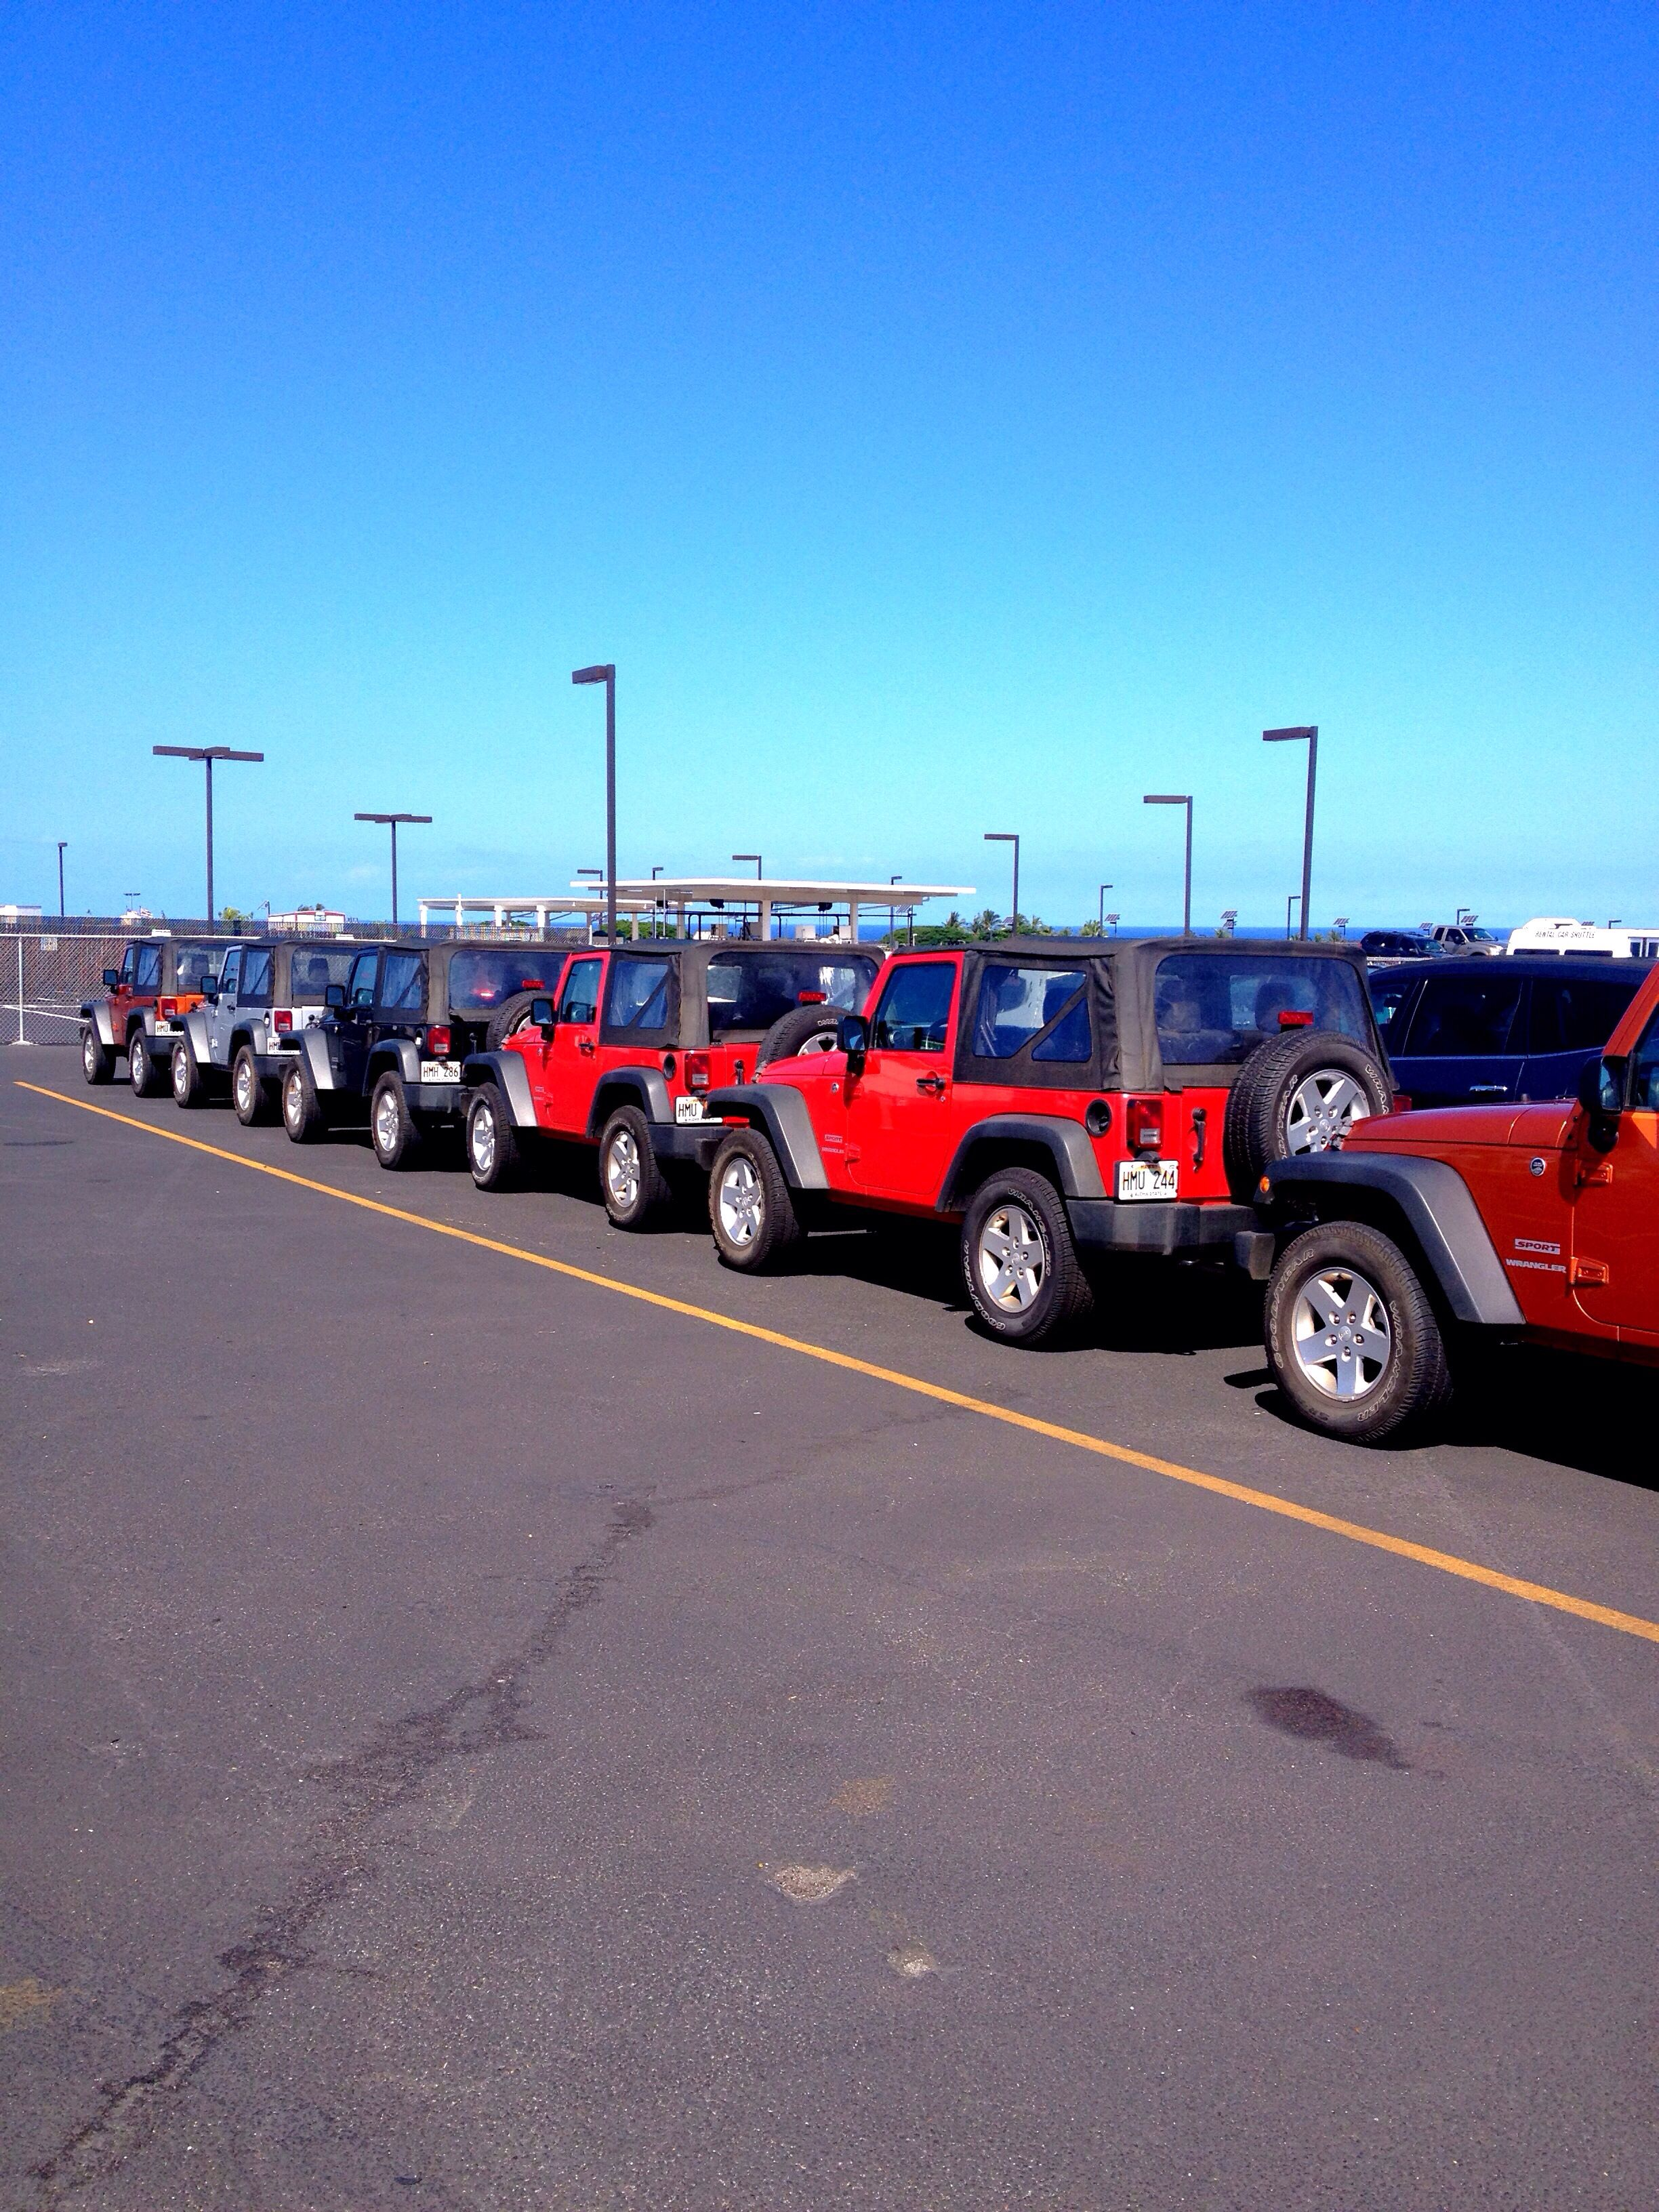 Thrifty Car Rentals >> Line Up Of Jeep Wranglers For Rent Thrifty Car Rental Kona